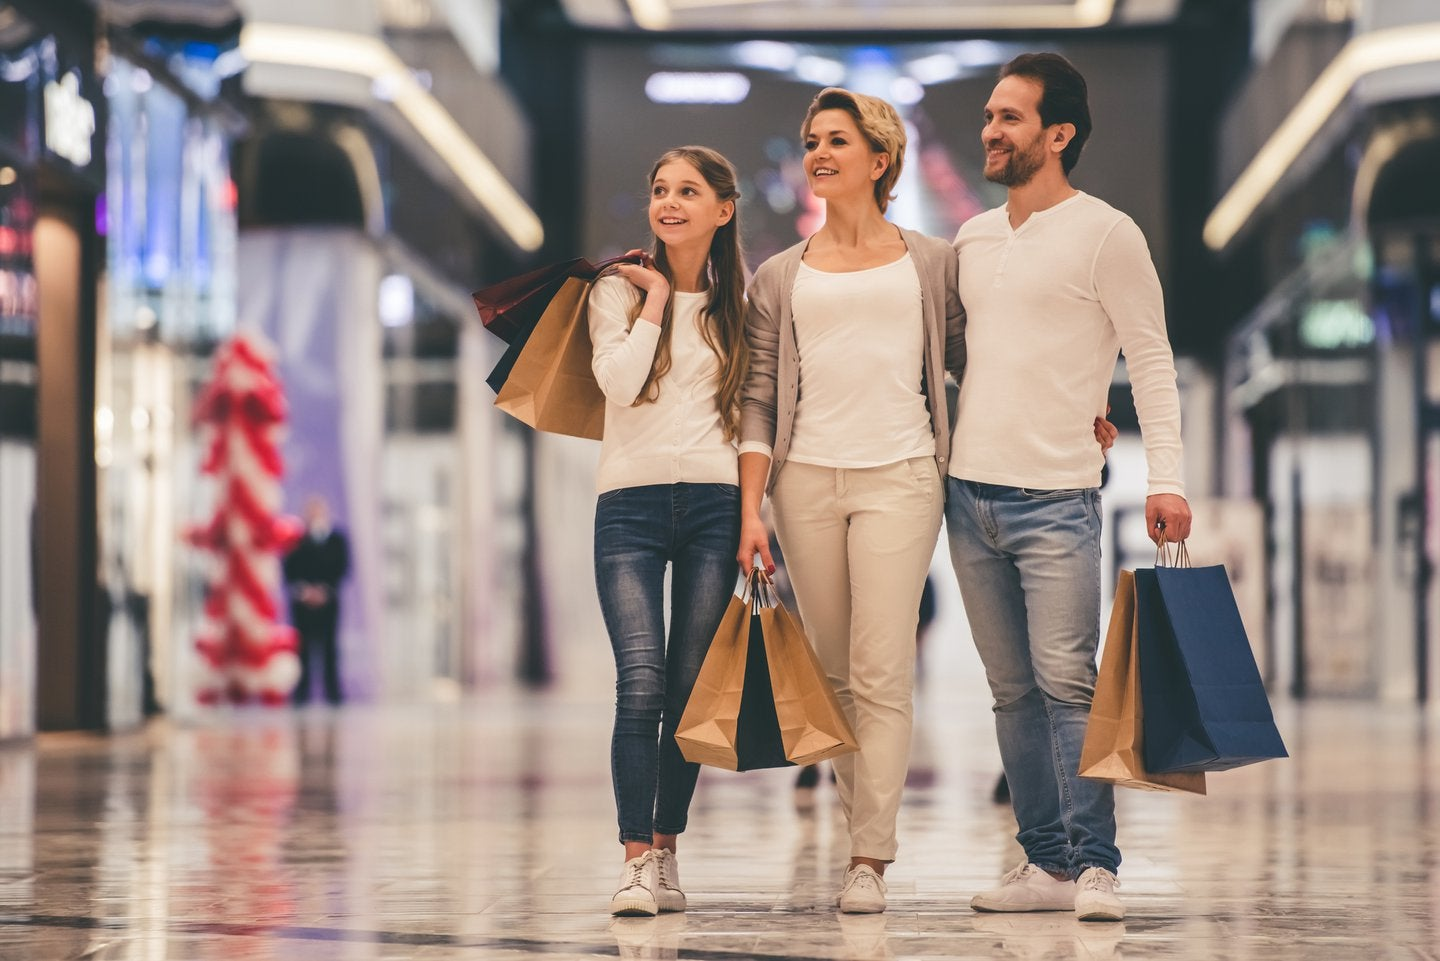 three people happily shopping at a shopping mall